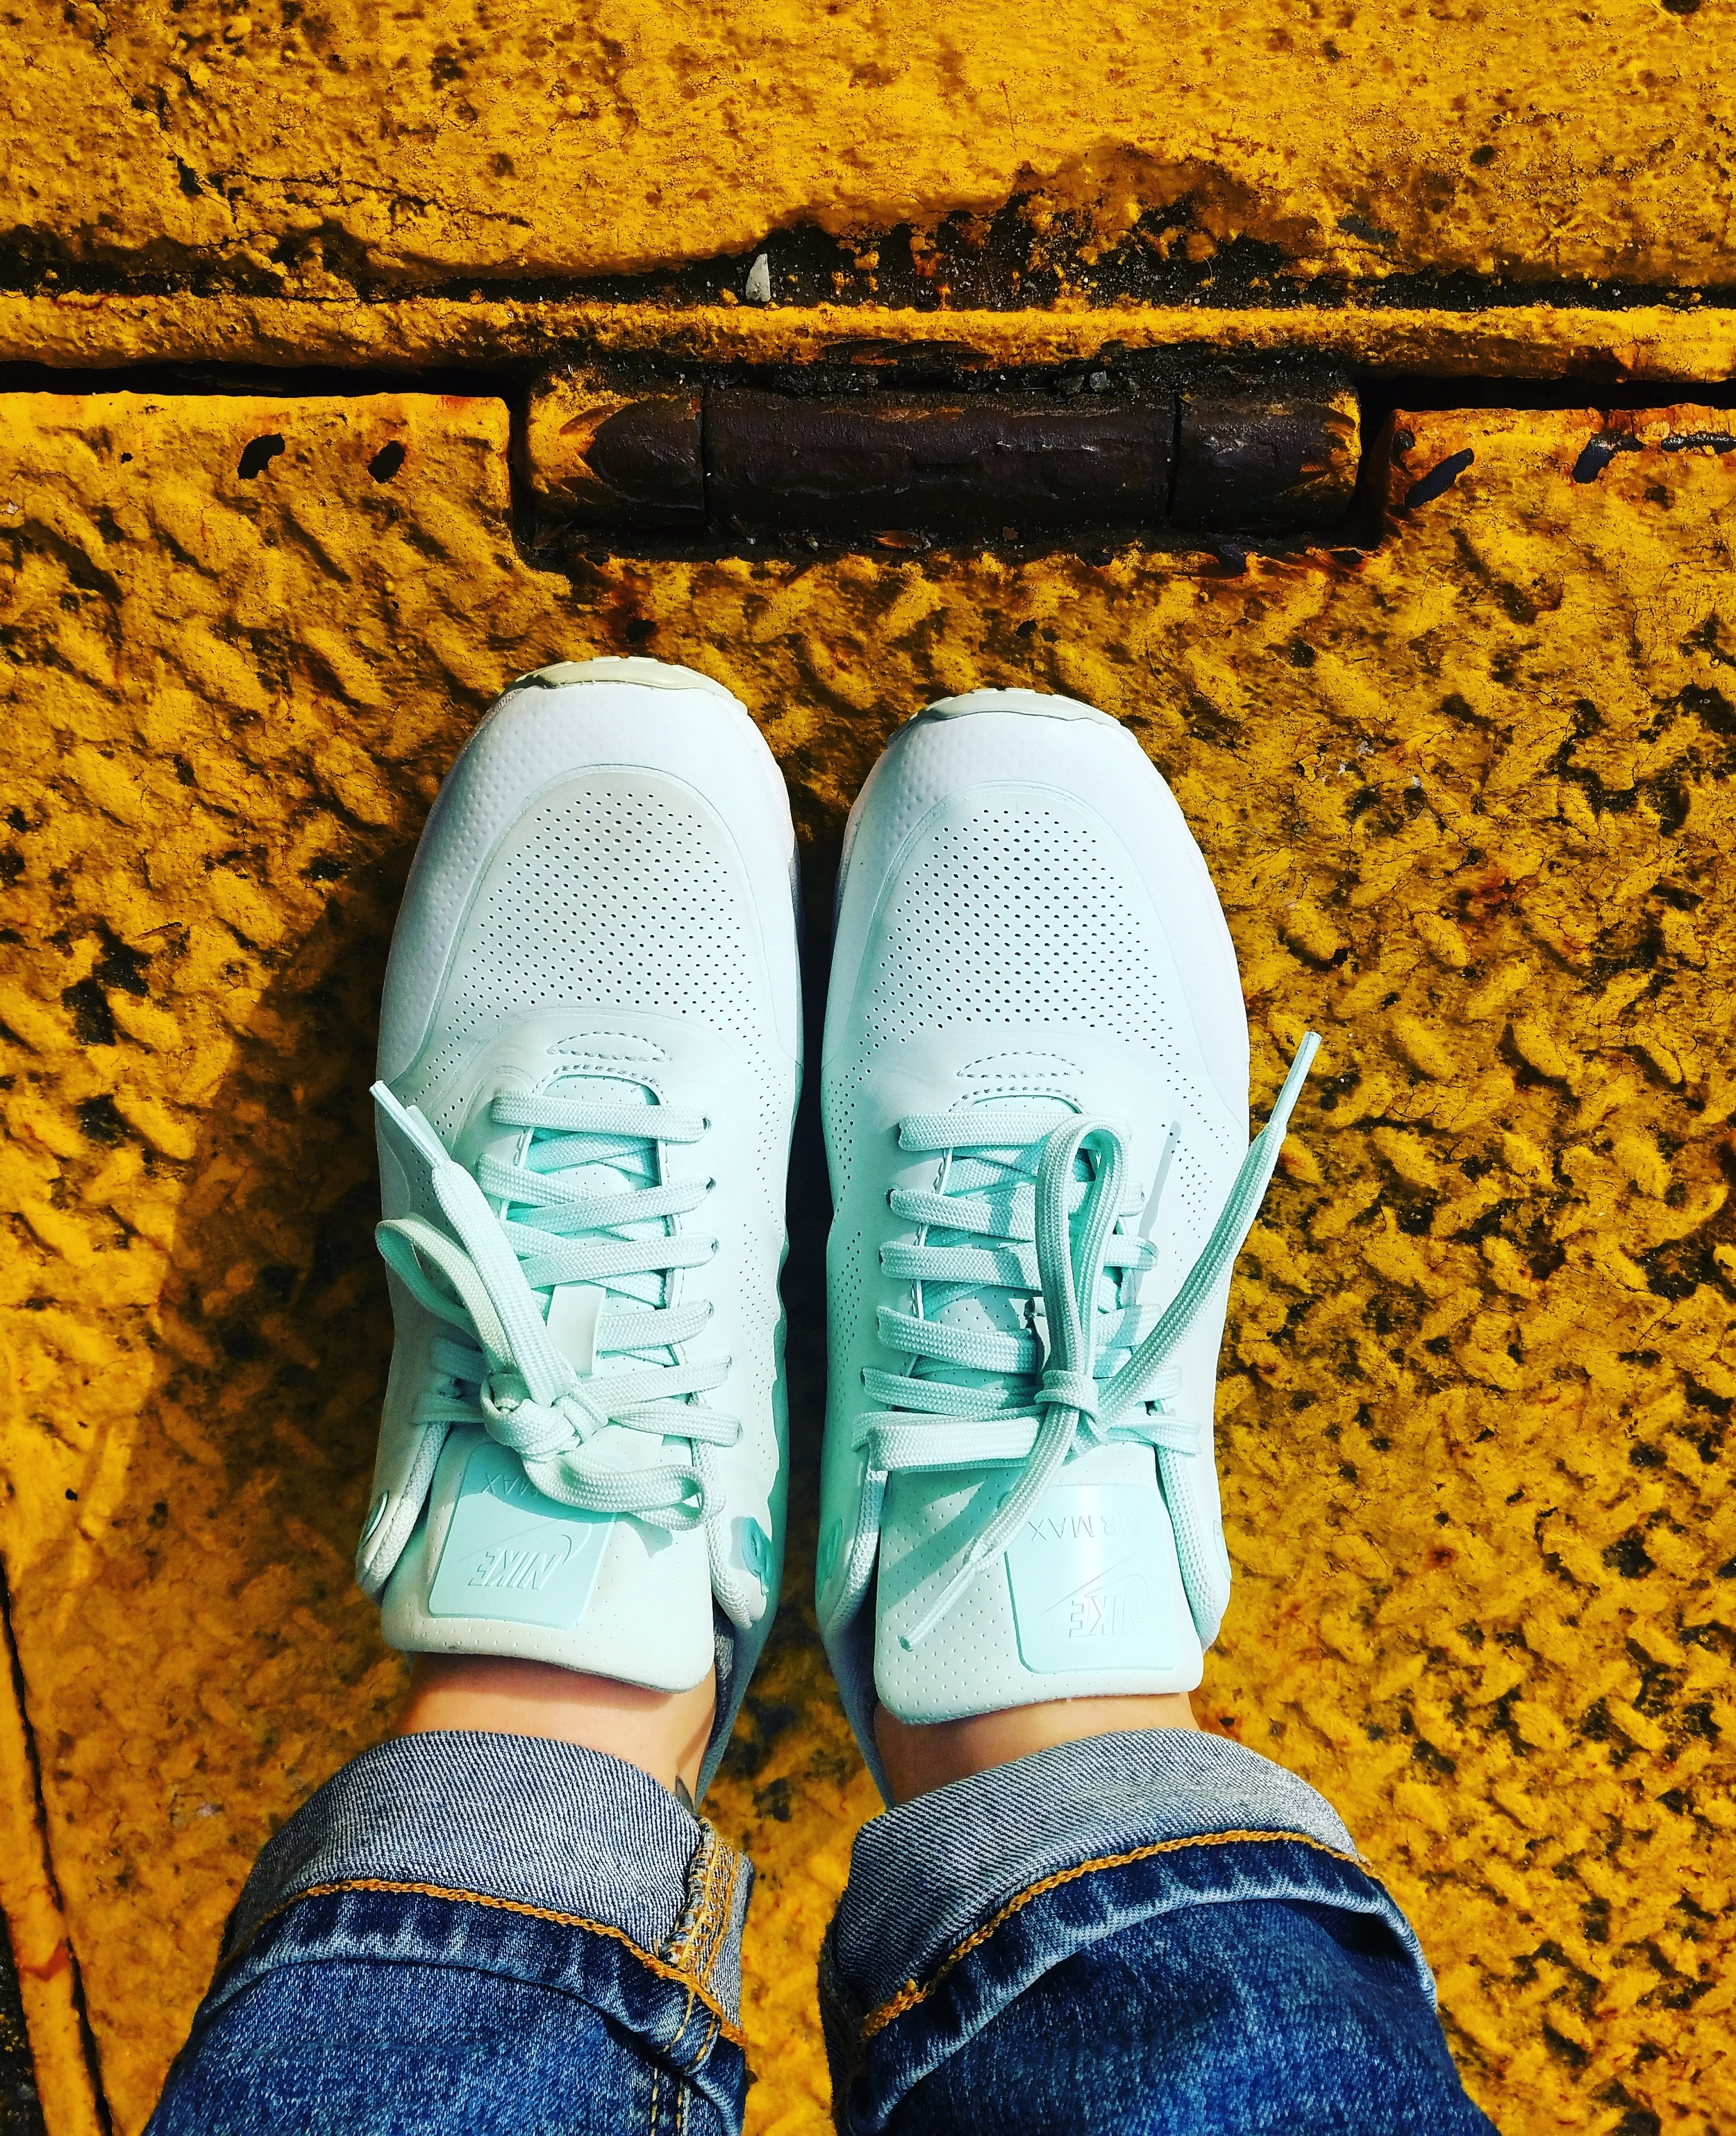 good shoes take us good places.